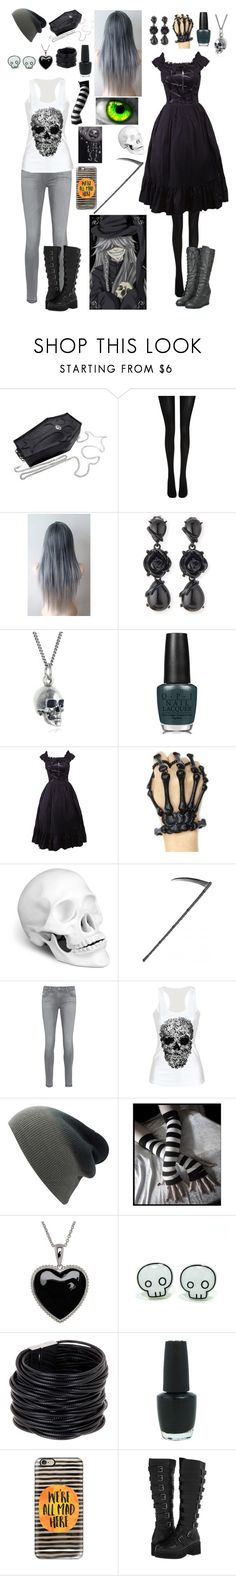 """Black Butler: Daughter of the Undertaker"" by ender1027 ❤ liked on Polyvore featuring Wolford, Oscar de la Renta, Black Pearl, OPI, Retrò, L'Objet, AG Adriano Goldschmied, Lord & Taylor, Saachi and Casetify"